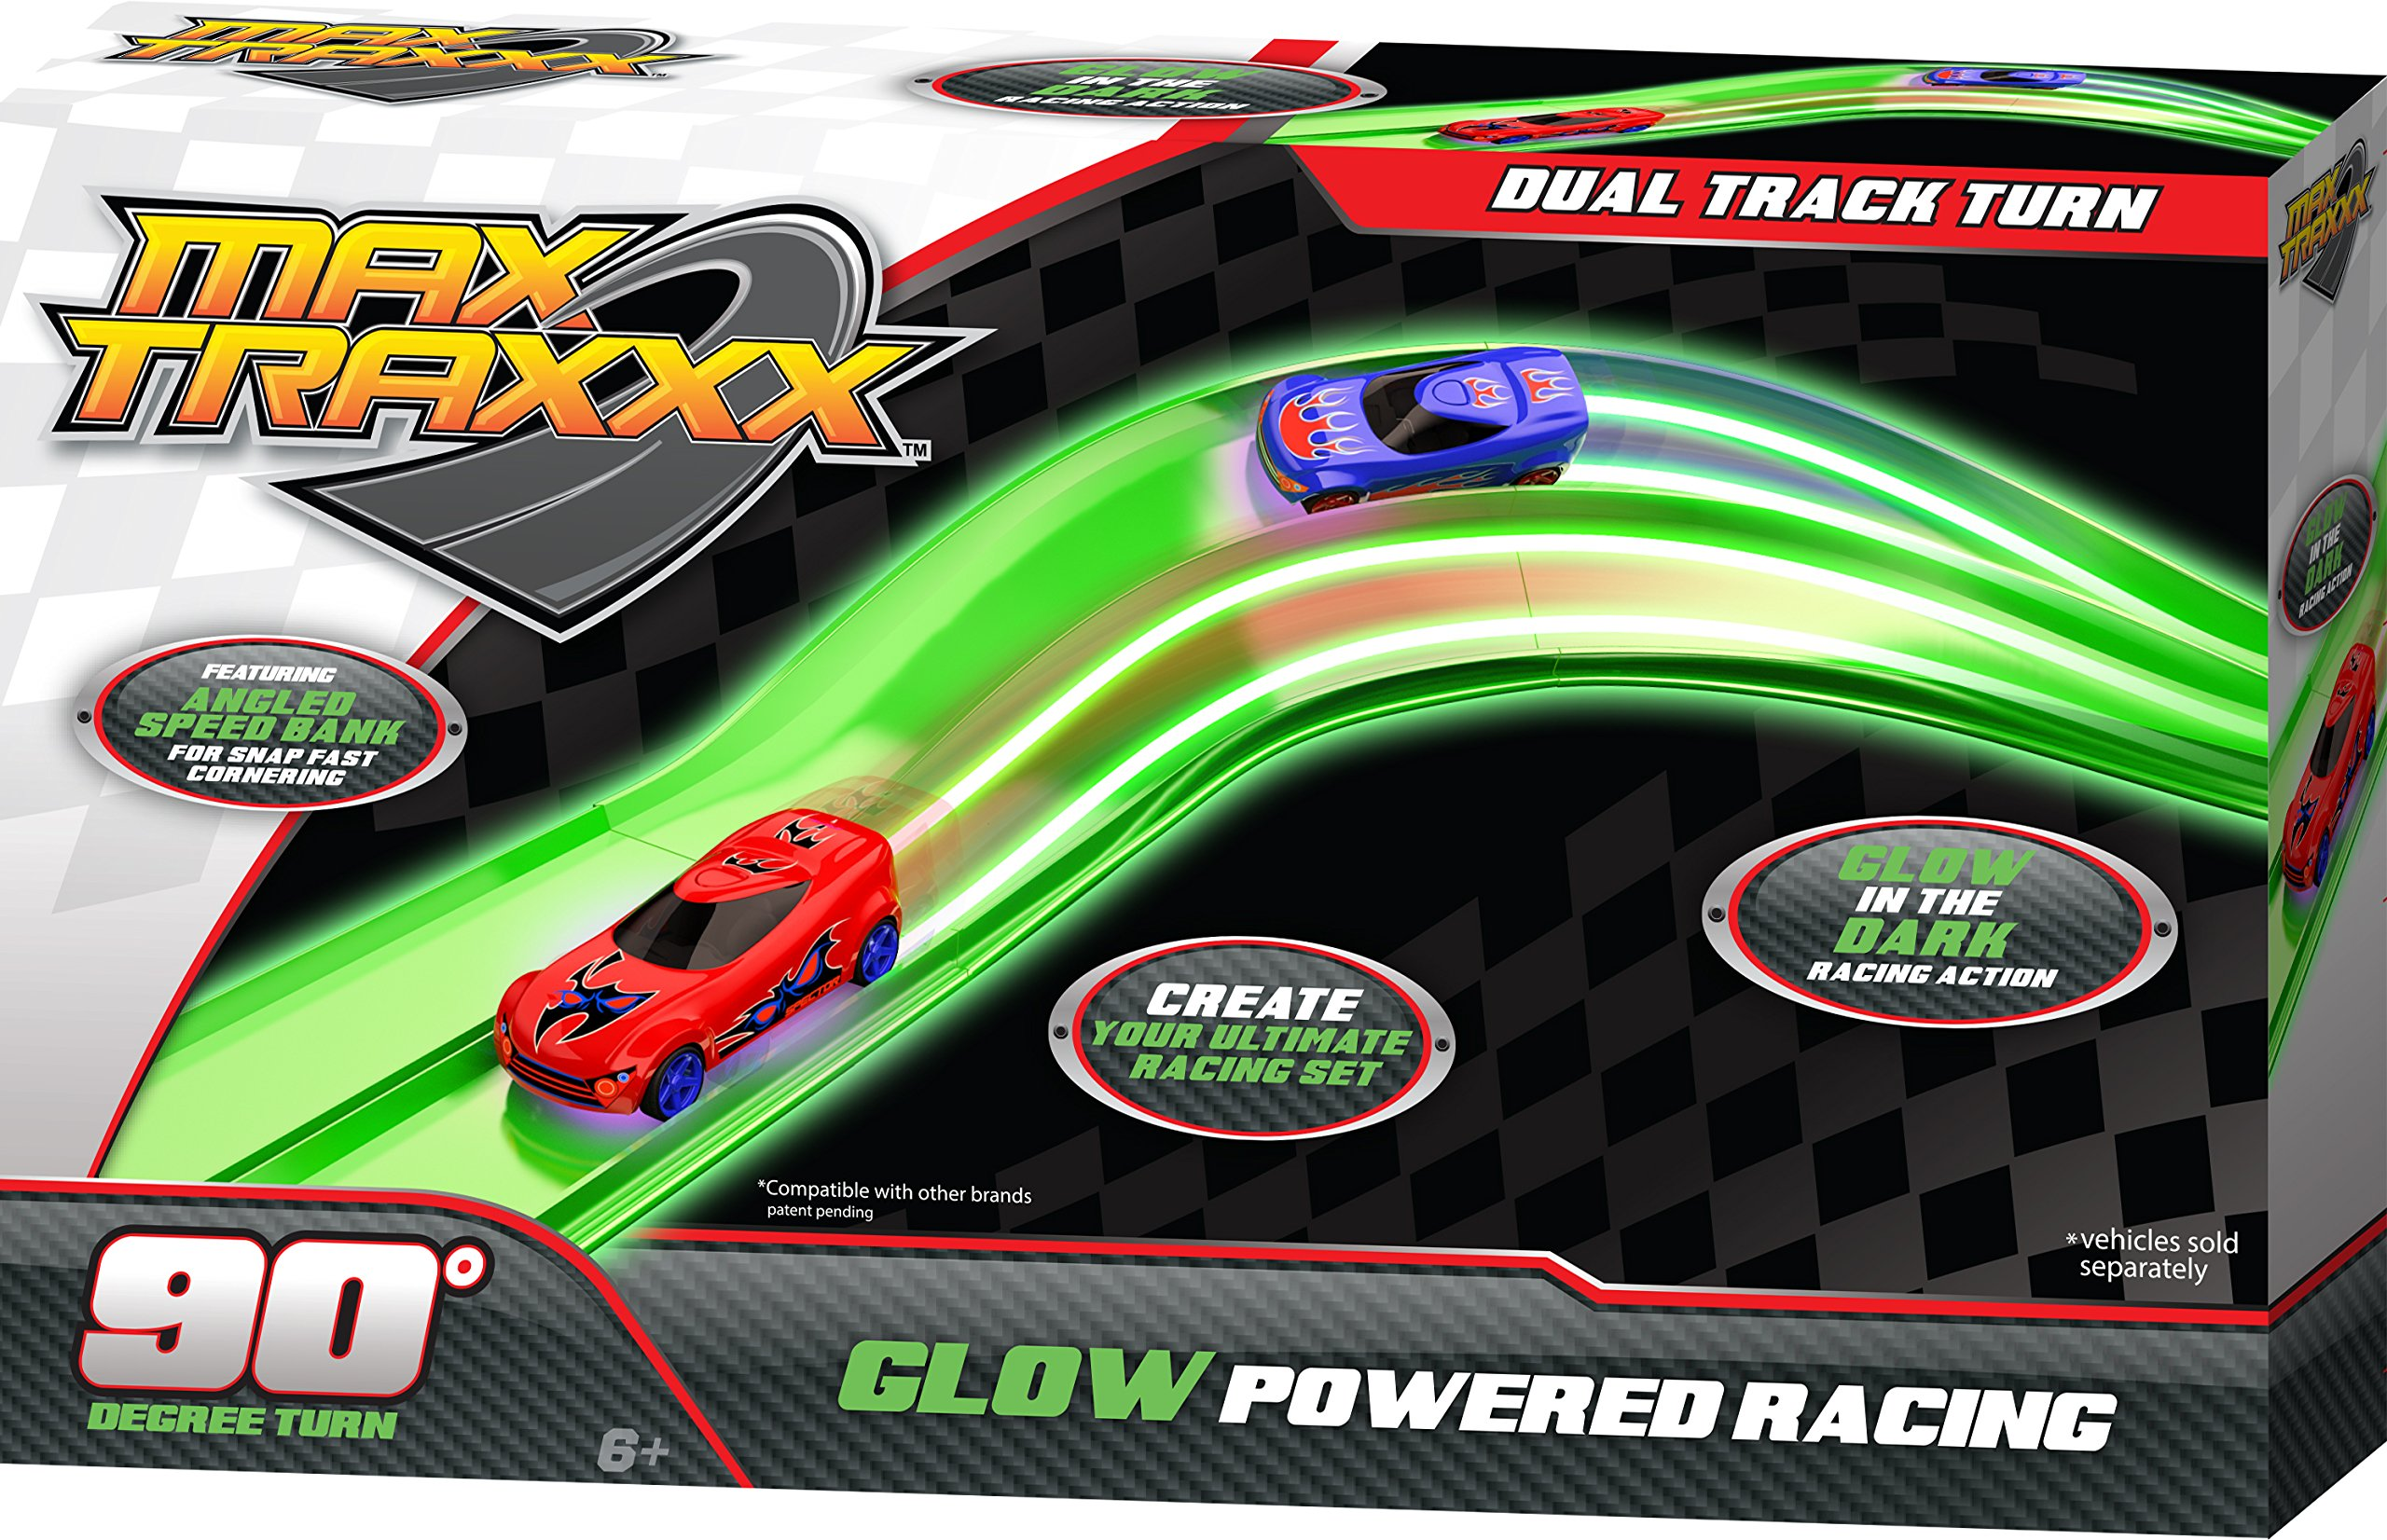 Max Traxxx Tracer Racers Dual Track Corner Add On Module for Gravity Drive and Remote Control Sets